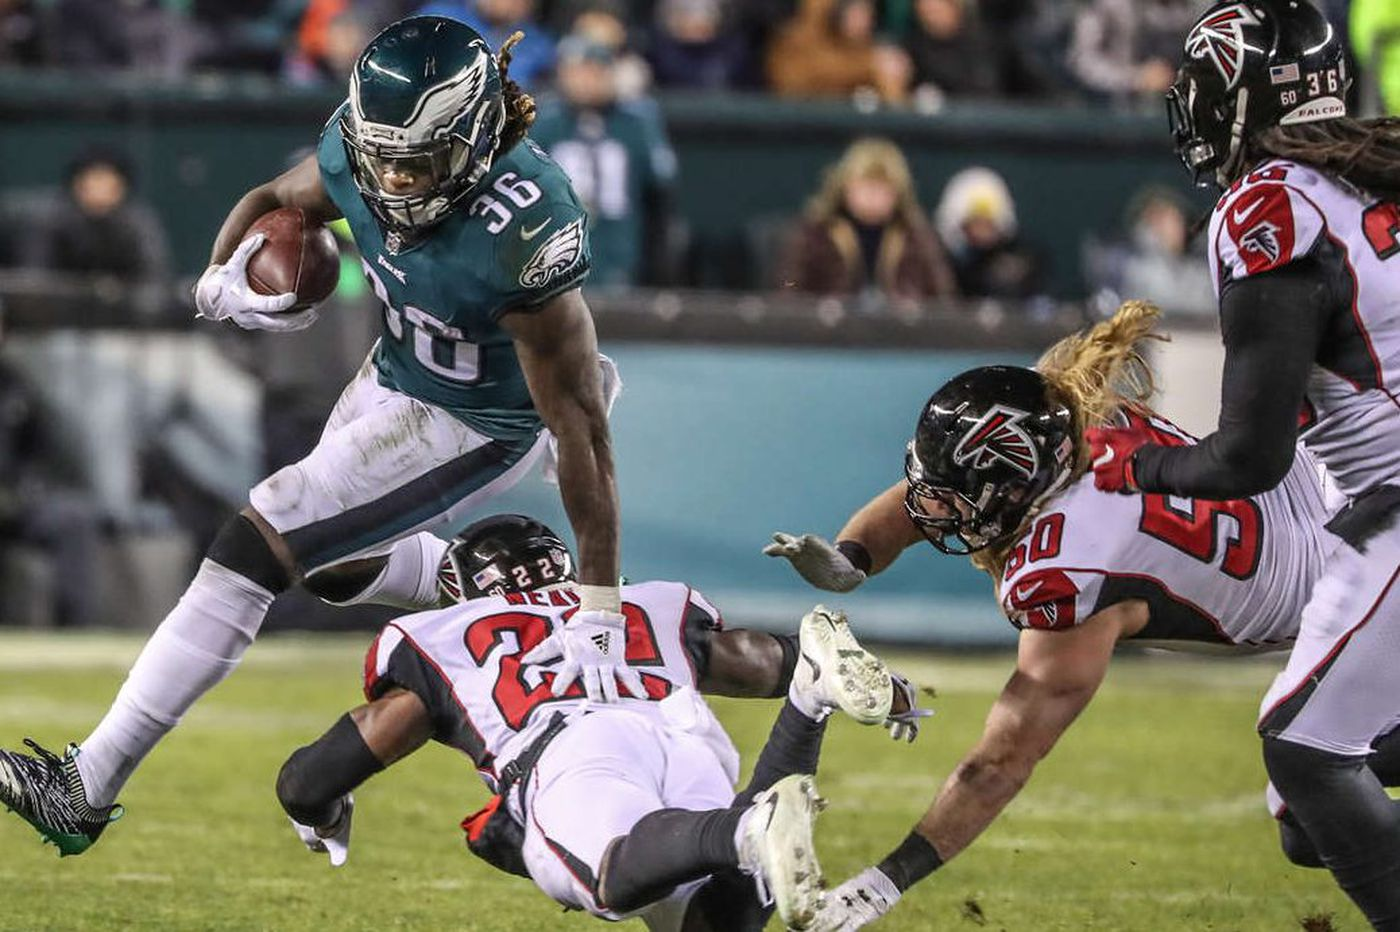 Before reflecting on a hectic year, Jay Ajayi wants a Super Bowl win